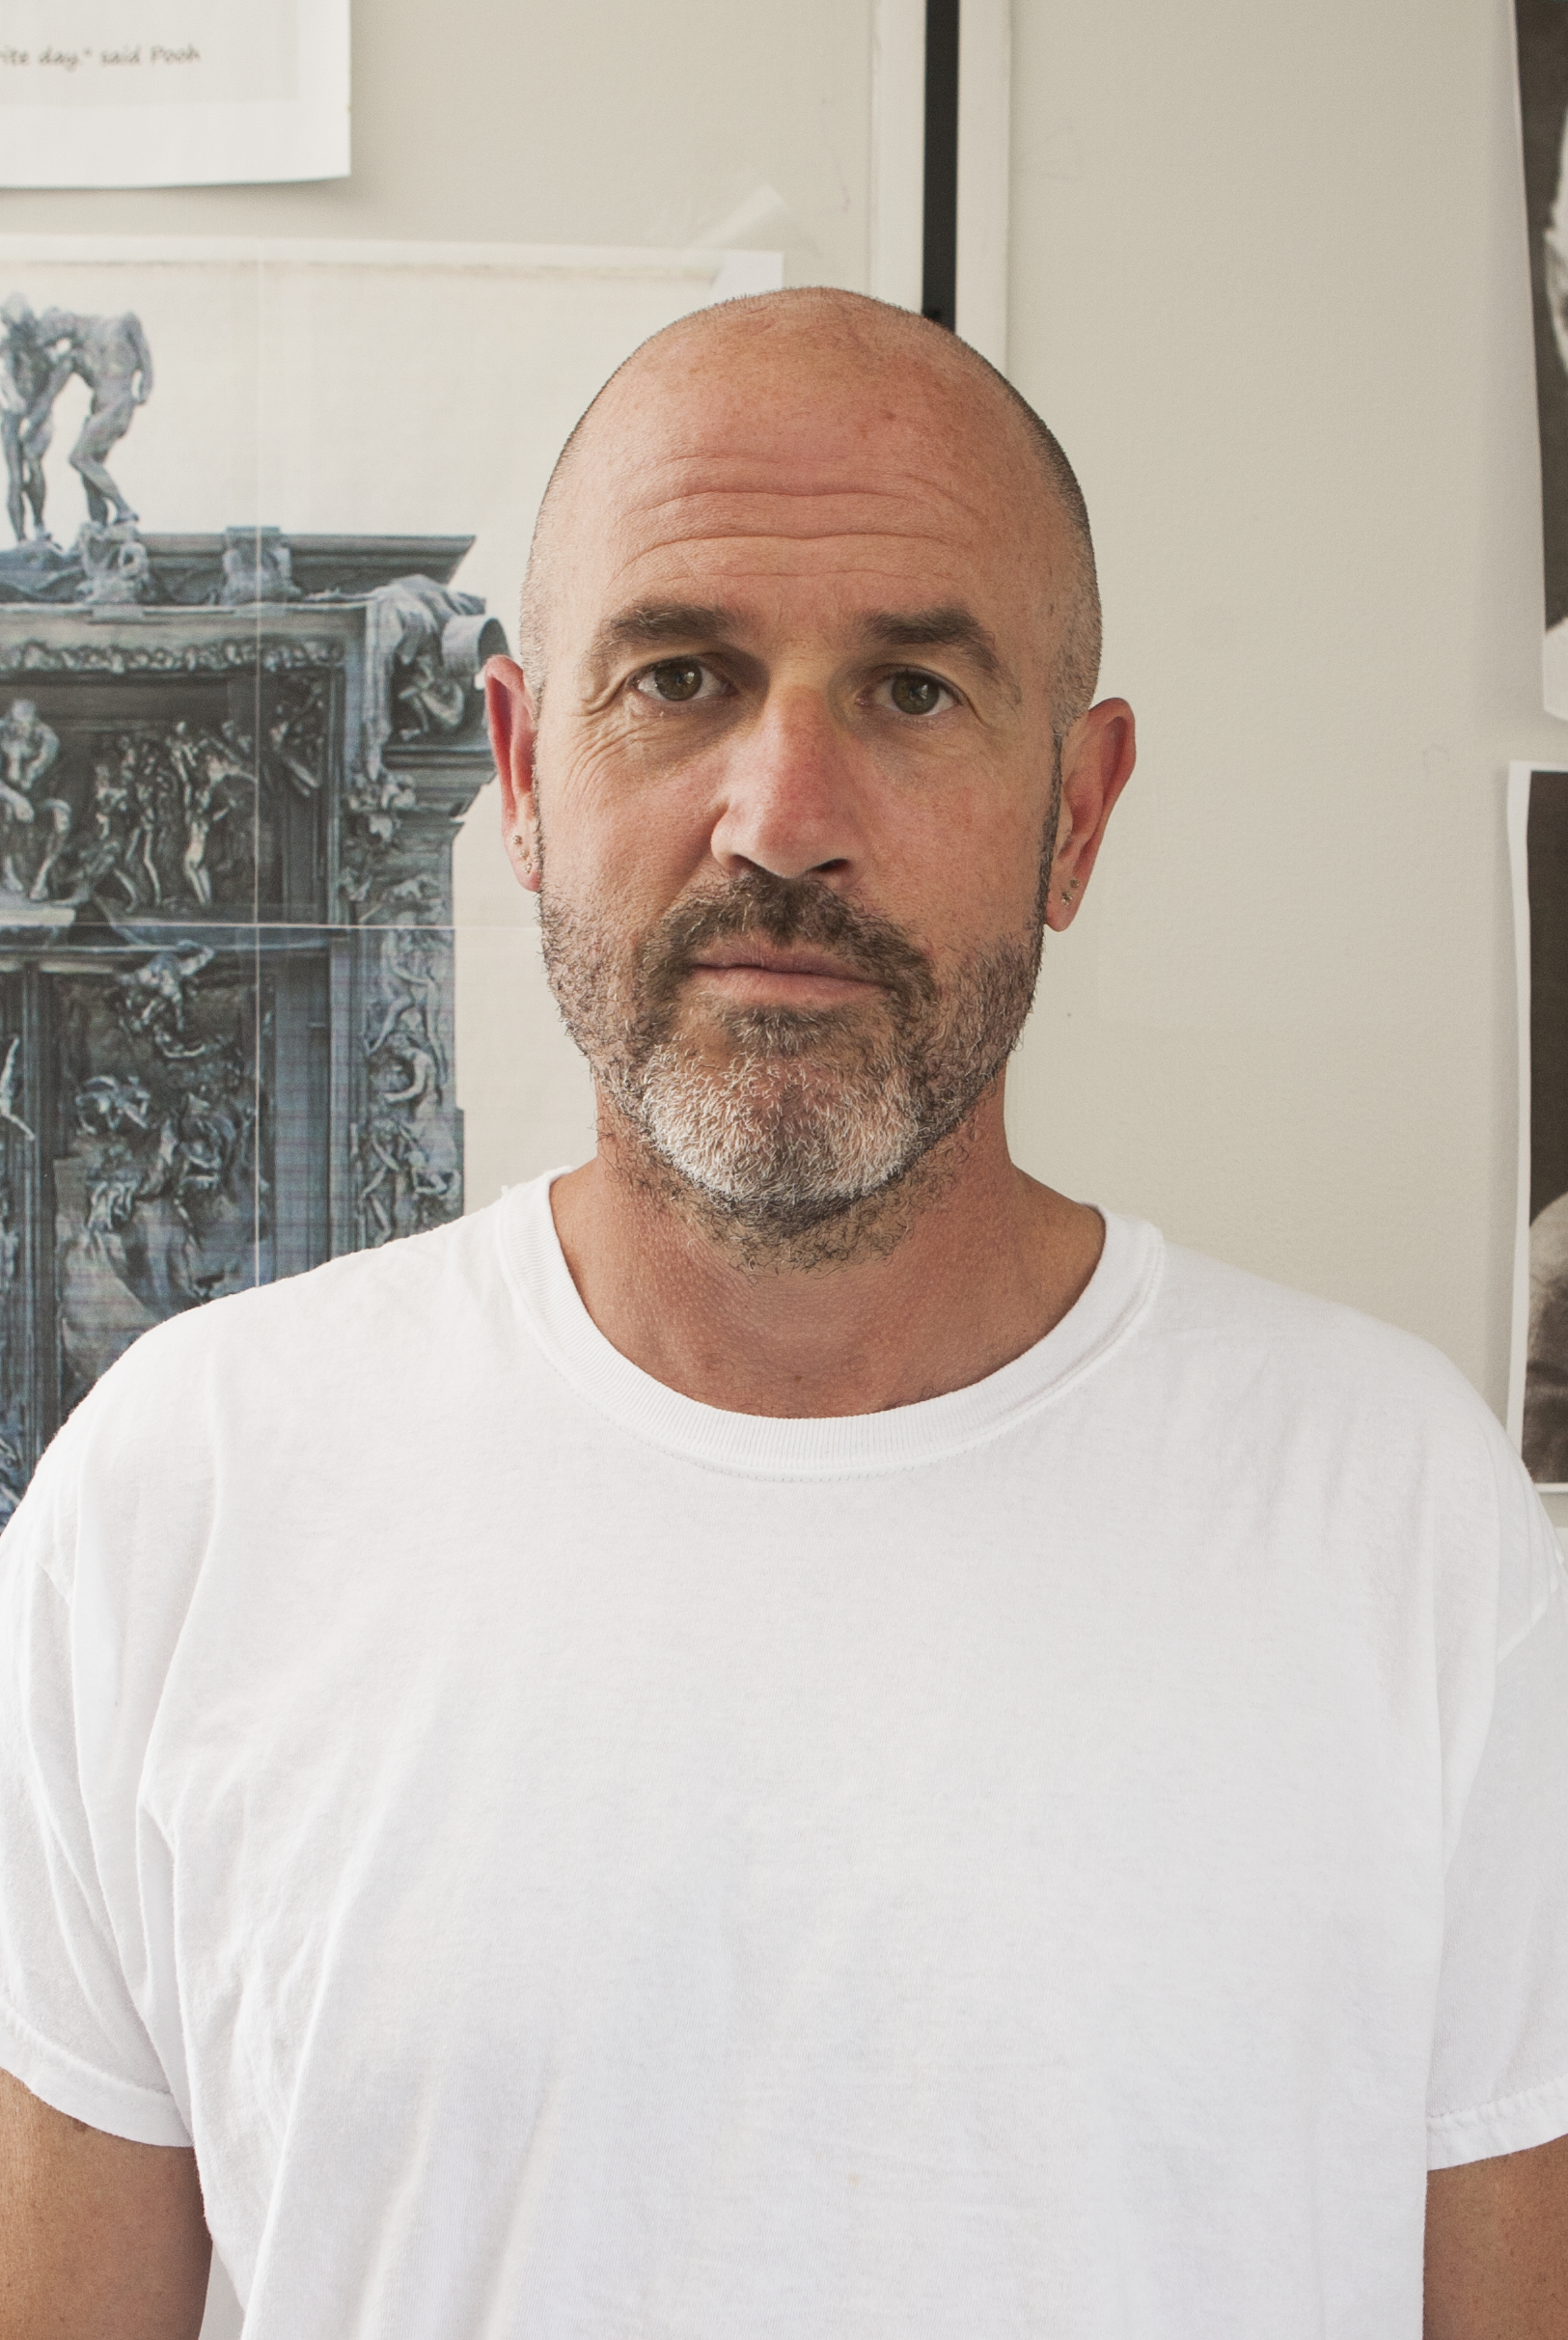 James Frey Cropped.png